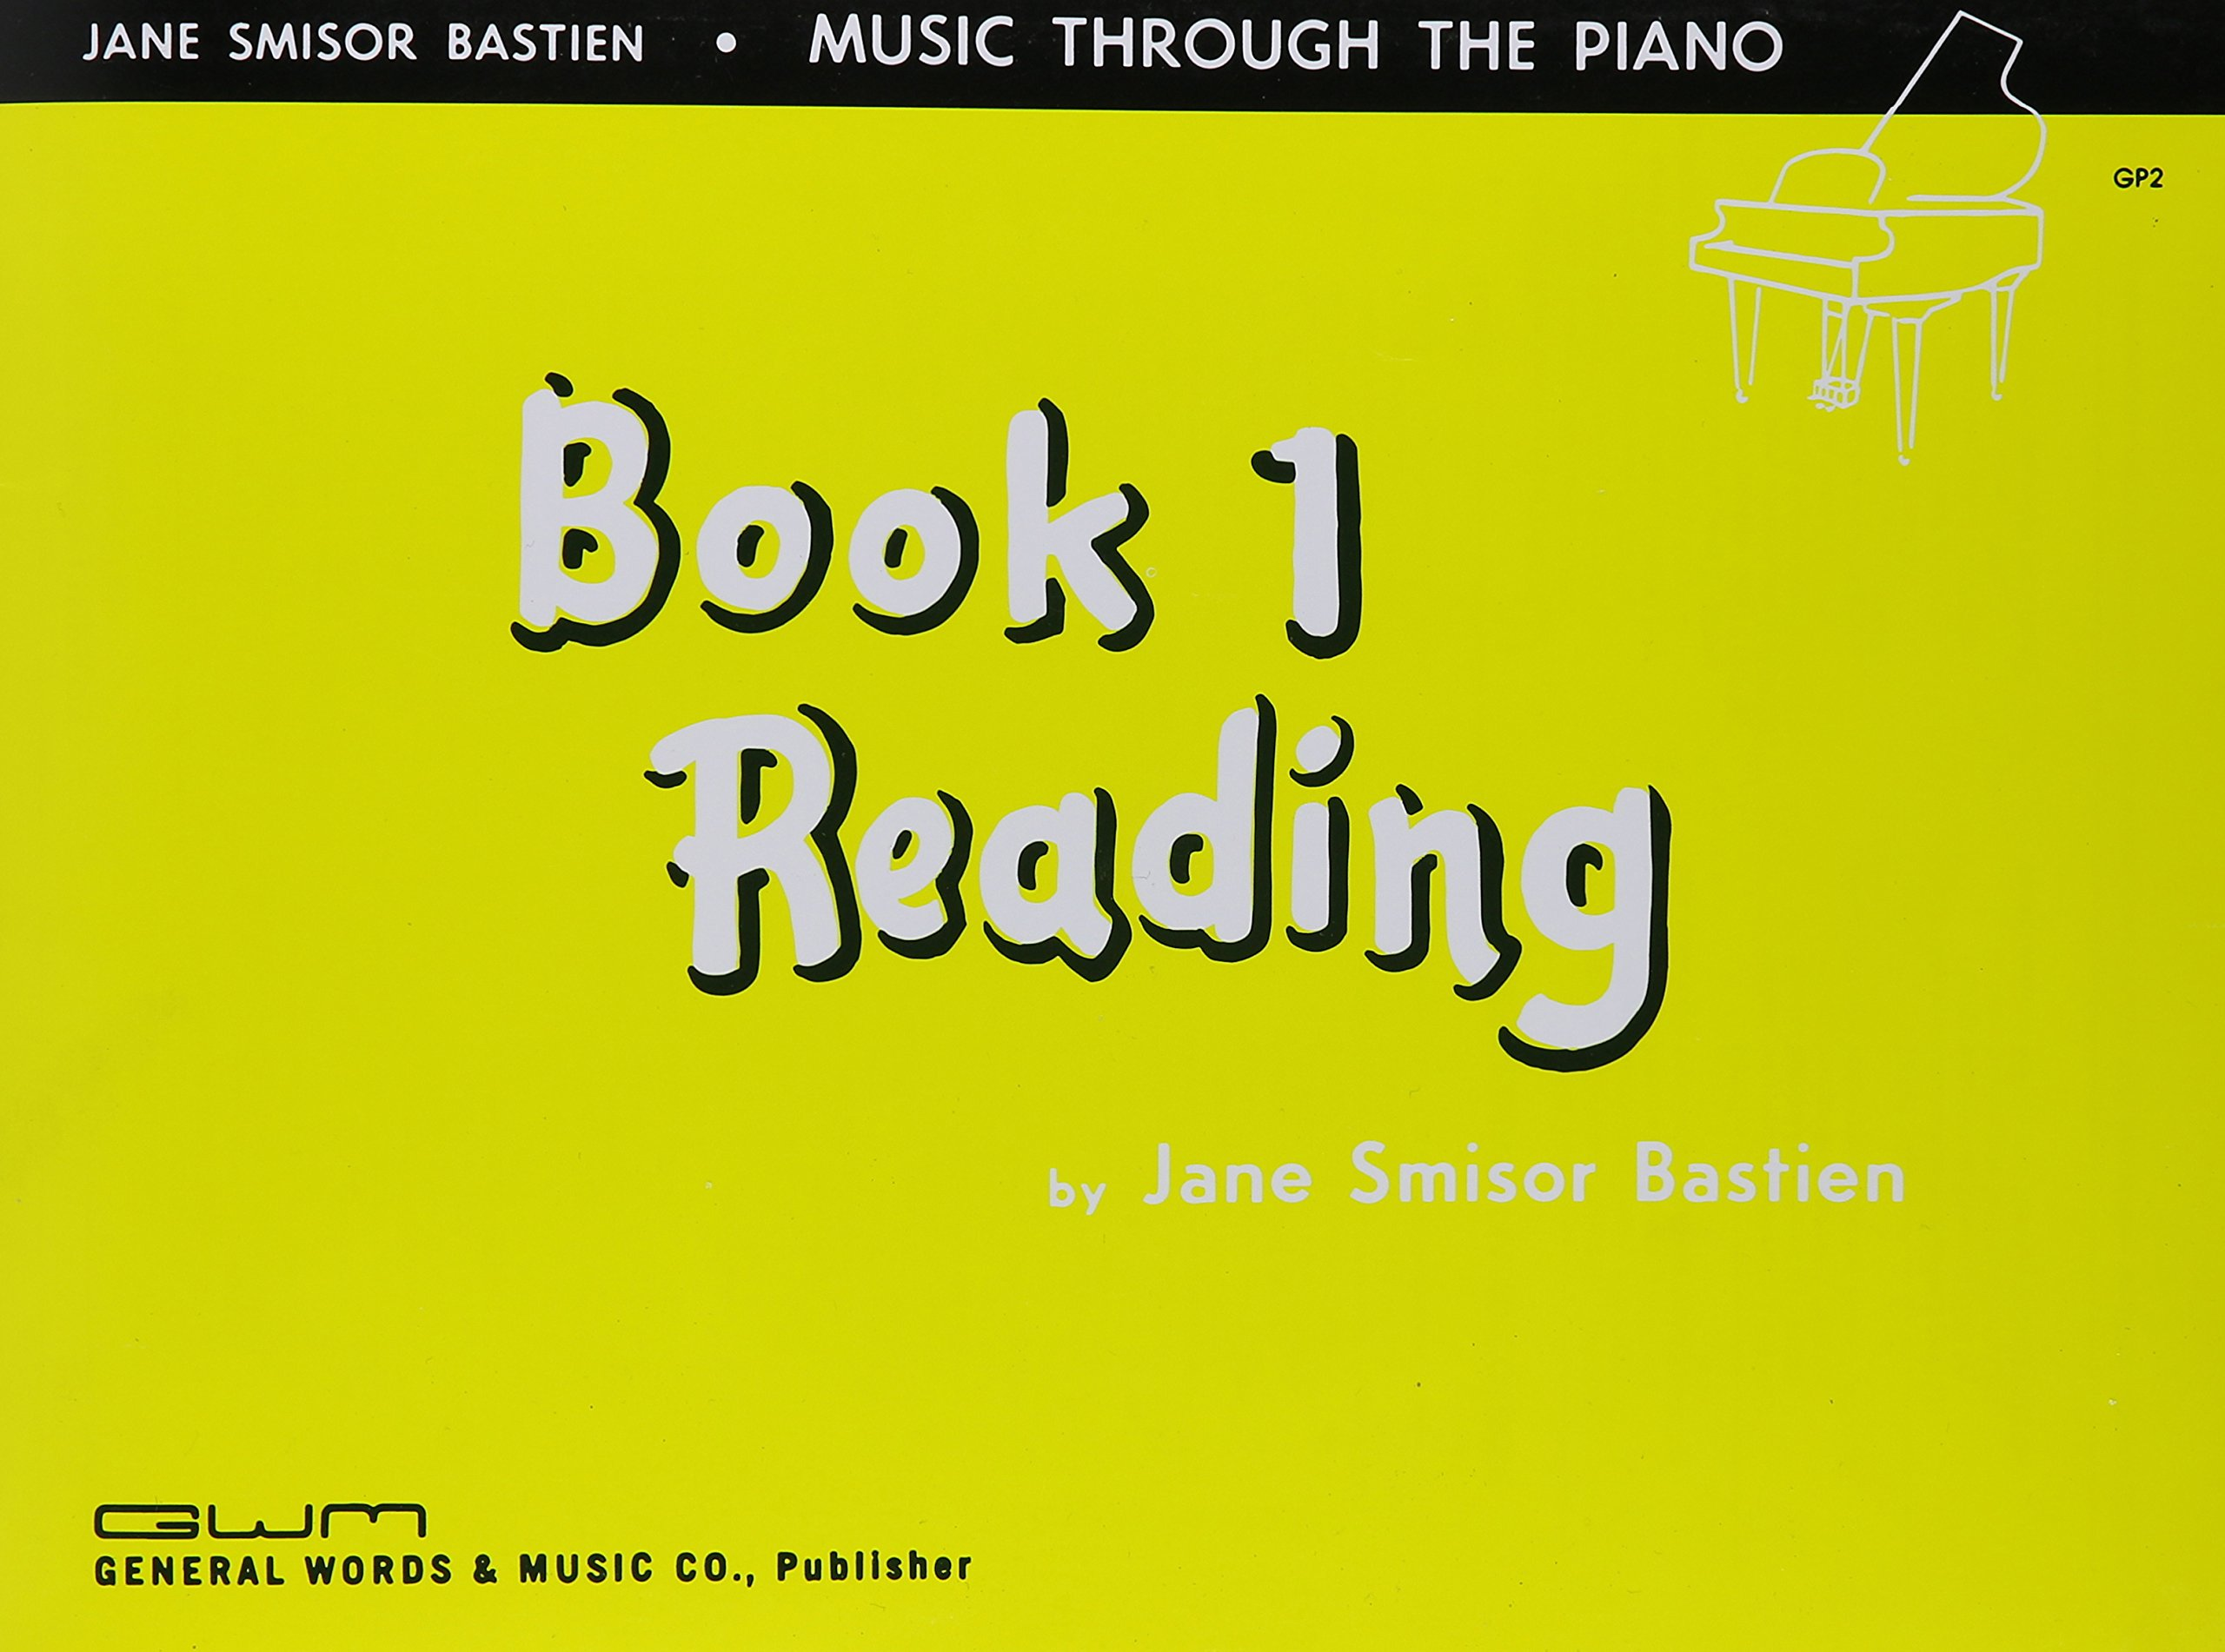 gp2 bastien music through the piano book 1 reading